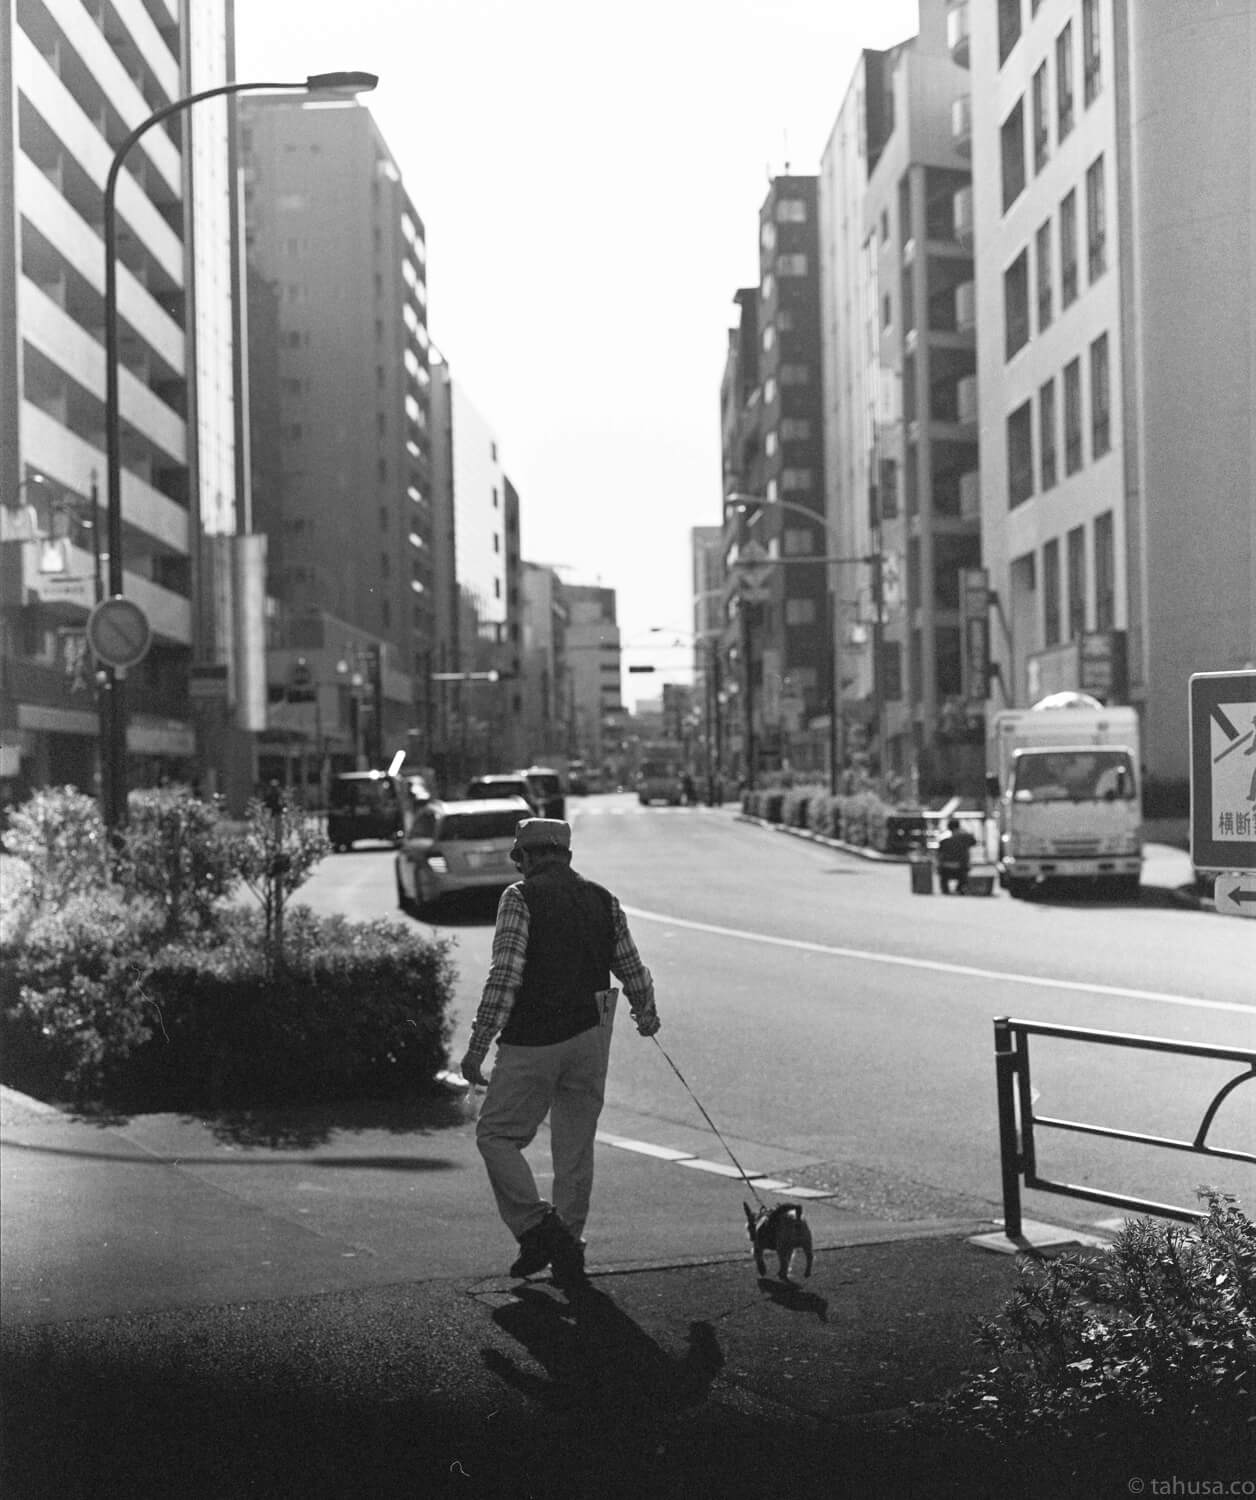 Old-man-with-his-dog-walking-in-shinjuku-district-japan-street-tokyo-streetphotography-blackandwhite-BW-B&W-japanese-travel-with-pentax-67-6x7-mediumformat-medium-format-120-Delta-400-Ilford-Film-analog-105mm-f2.4-super-takumar